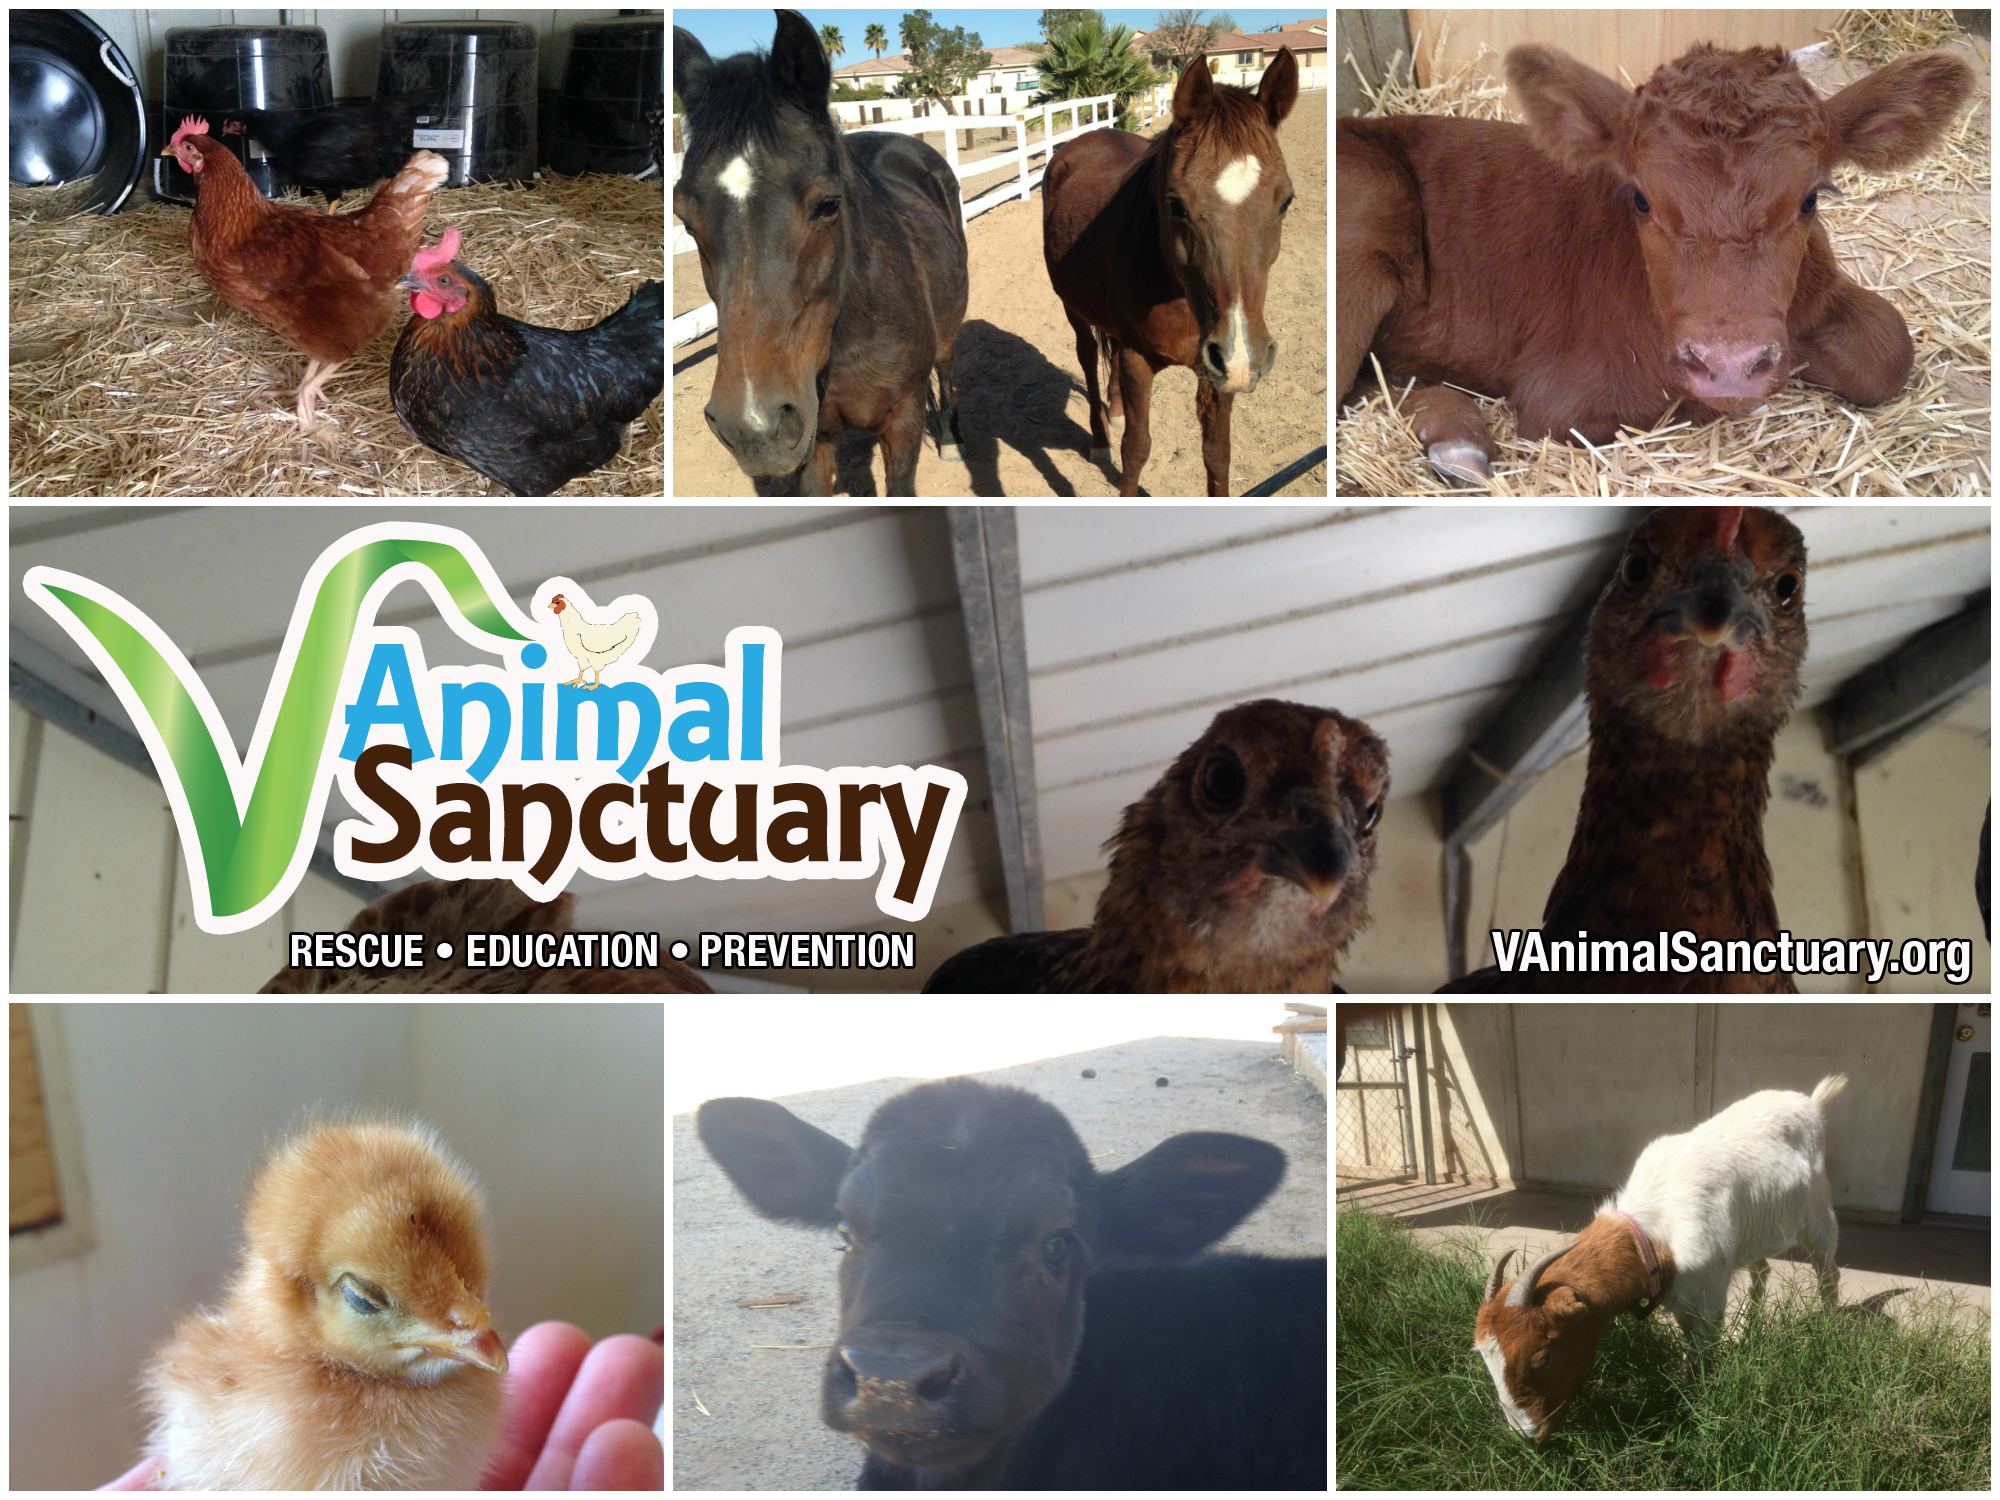 V Animal Sanctuary